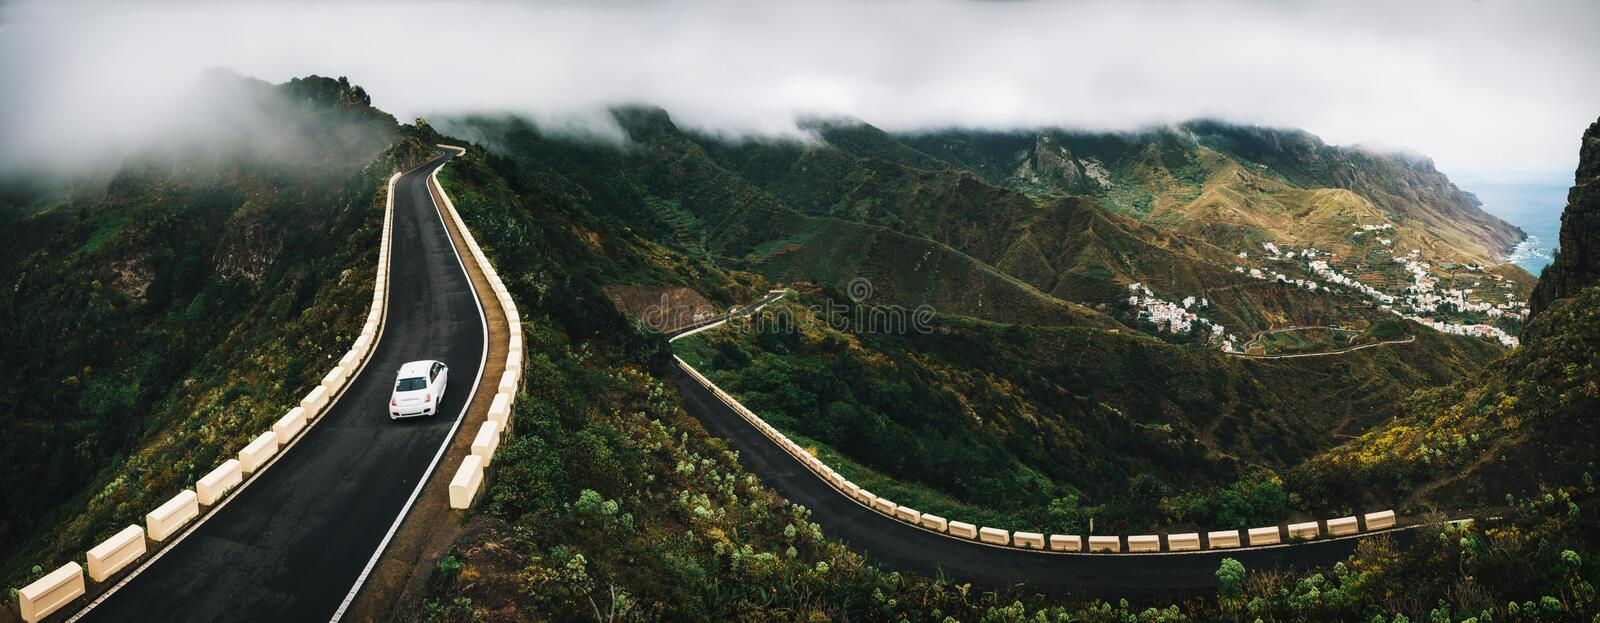 Taganana village with winding road in Tenerife stock photo